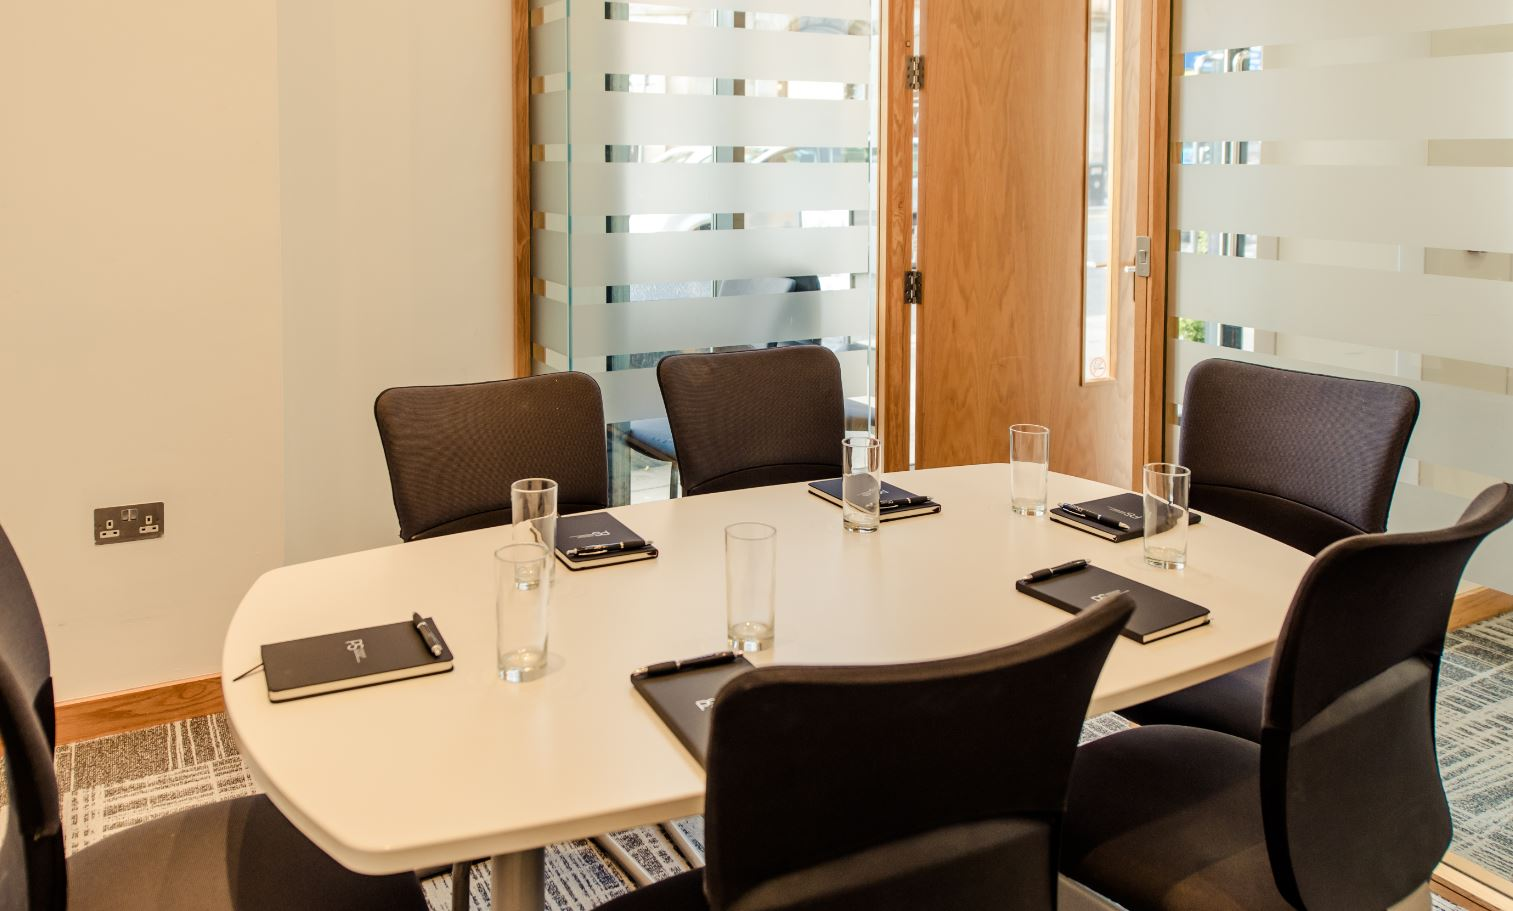 Conference room at Premier Suites Manchester - Citybase Apartments